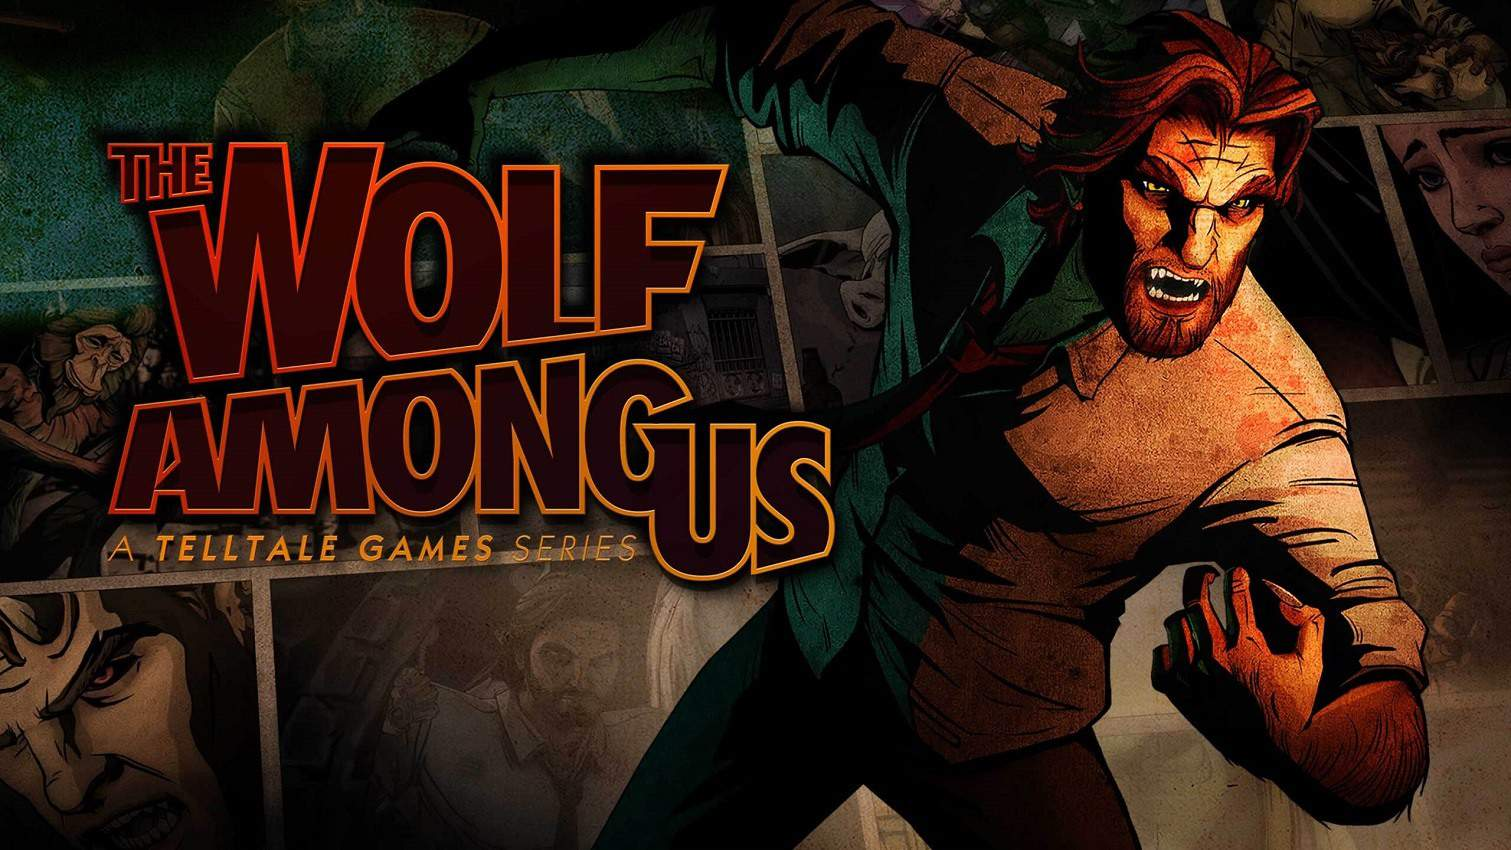 free games Epic Games Store Wolf Among Us The Escapist